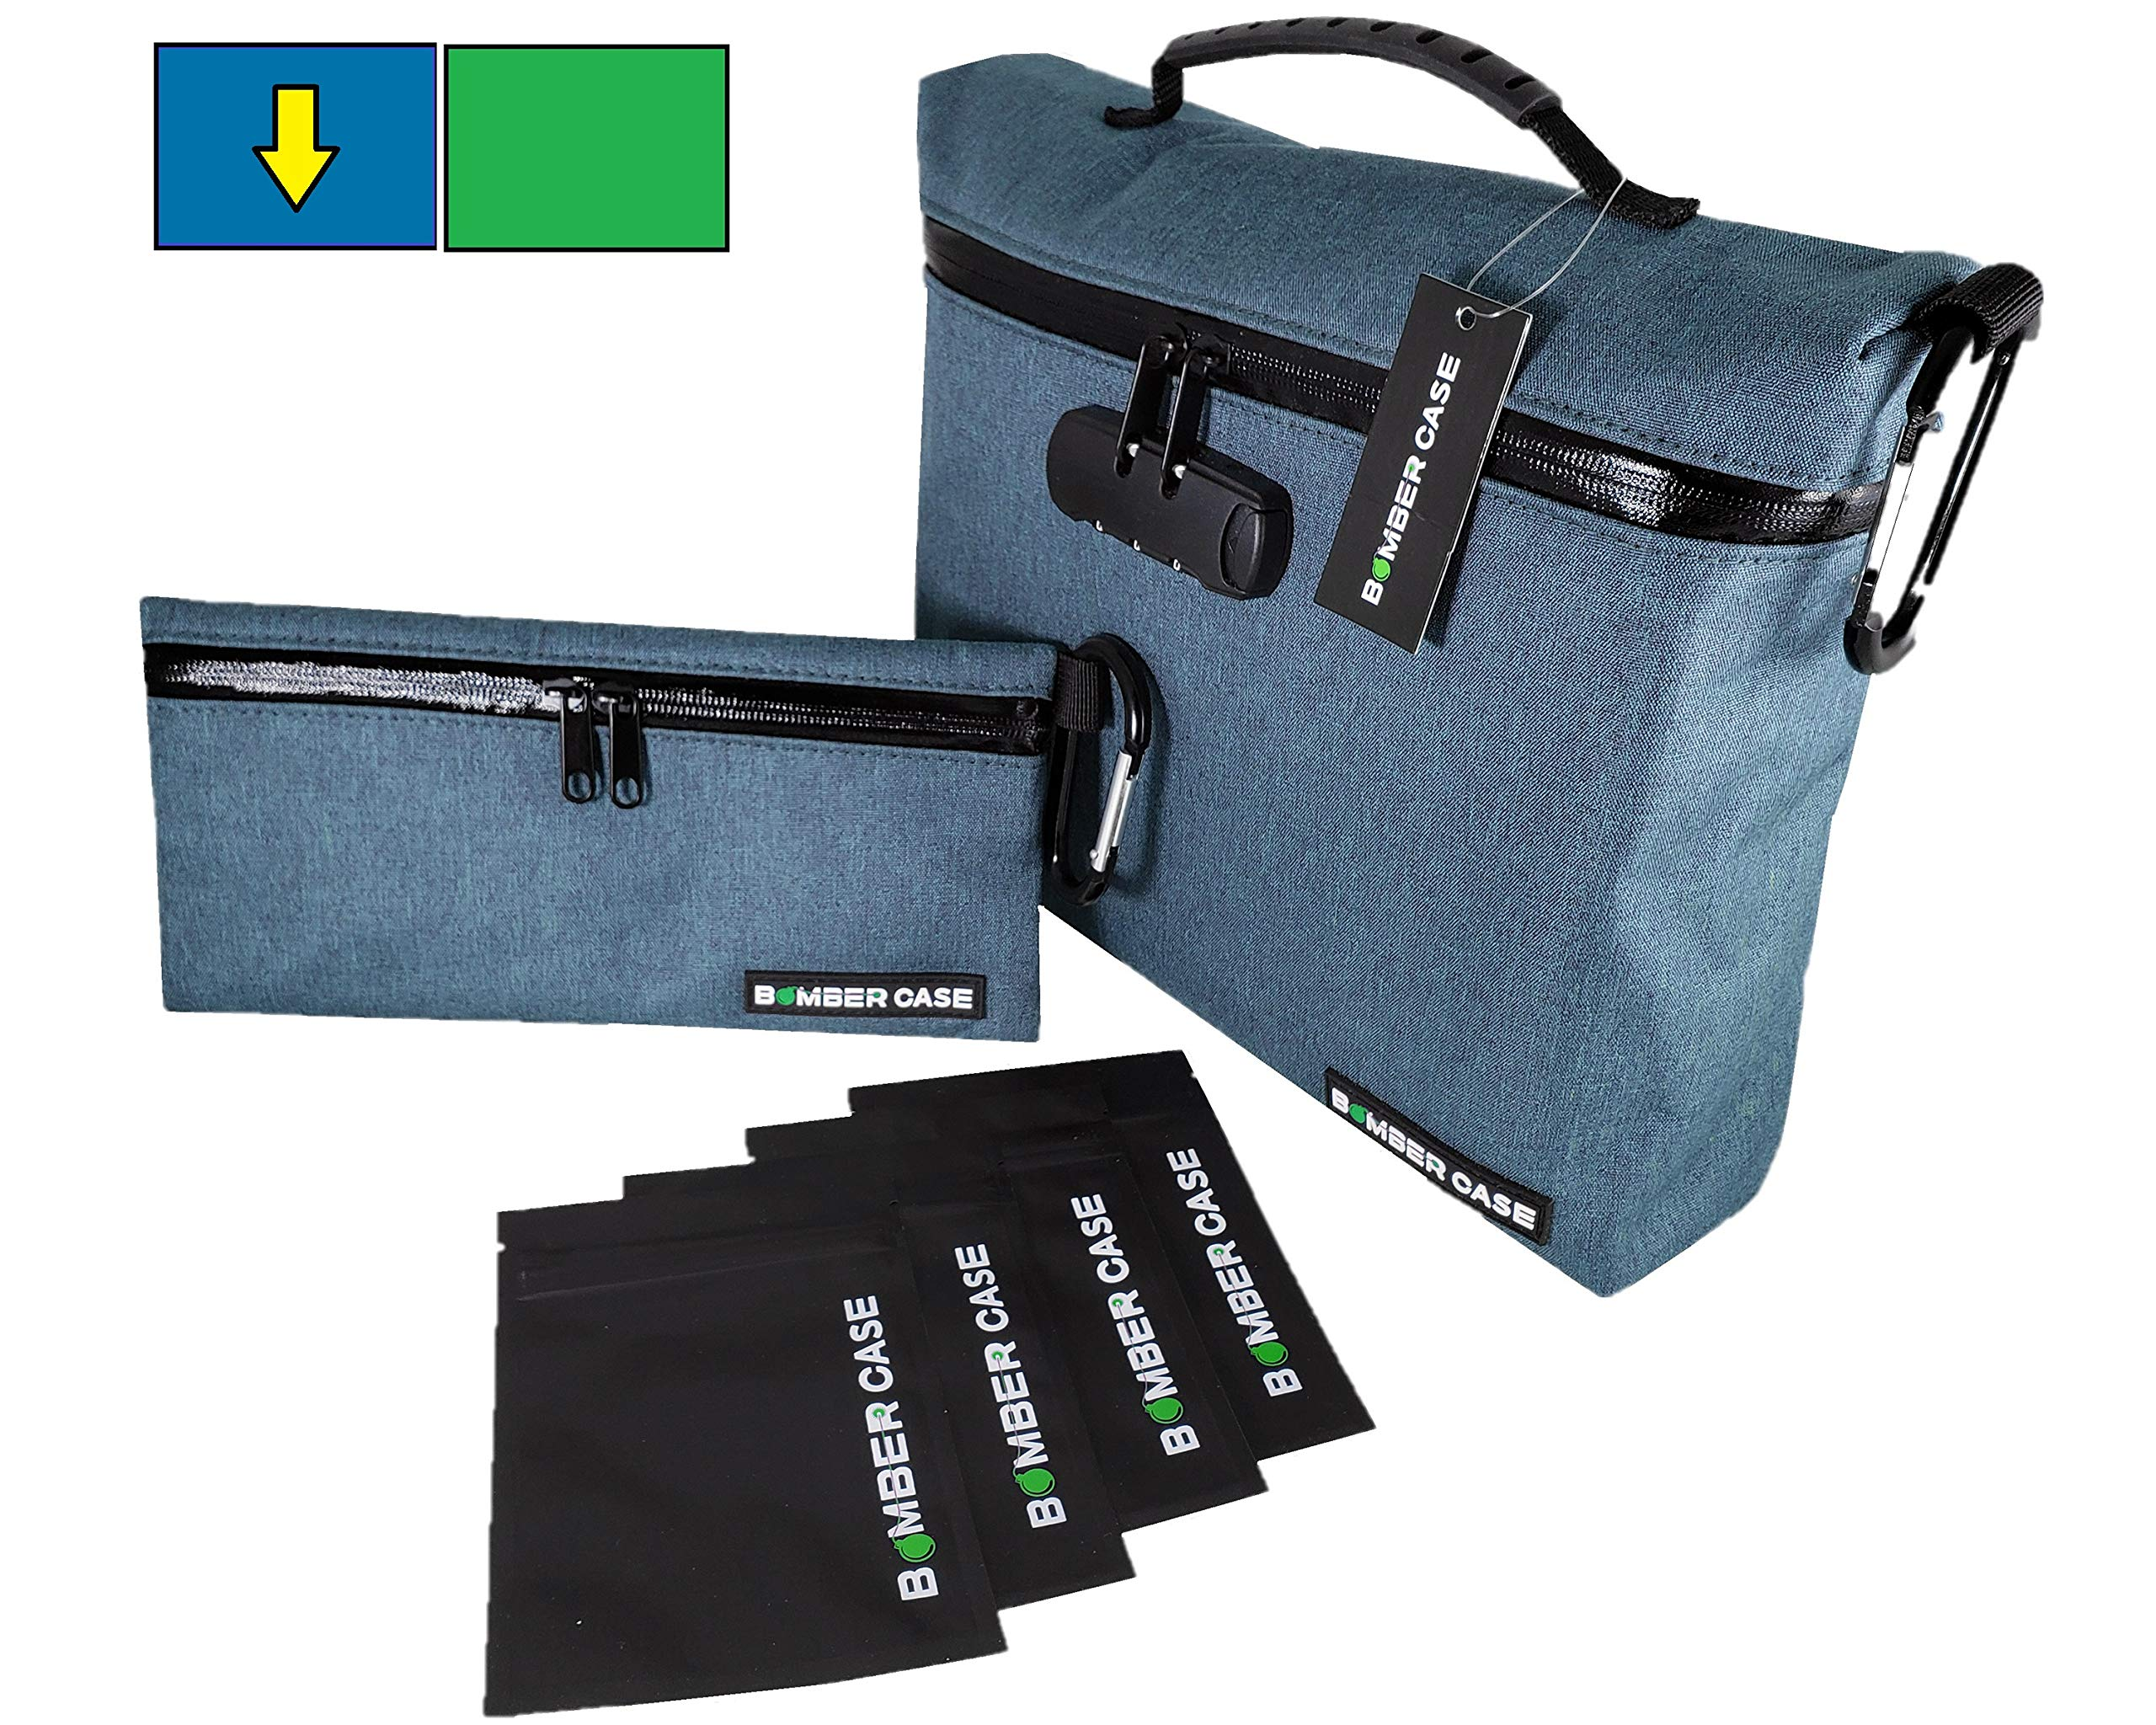 6 Piece Premium Locking Smell Proof Bag Set by Bomber Case. Lockable XL, Medium, 4 Small Reusable Heavy Duty Plastic Stash Bags. Odor Proof Pouch, Carbon Lined, Combination Lock Case. 2 Colors